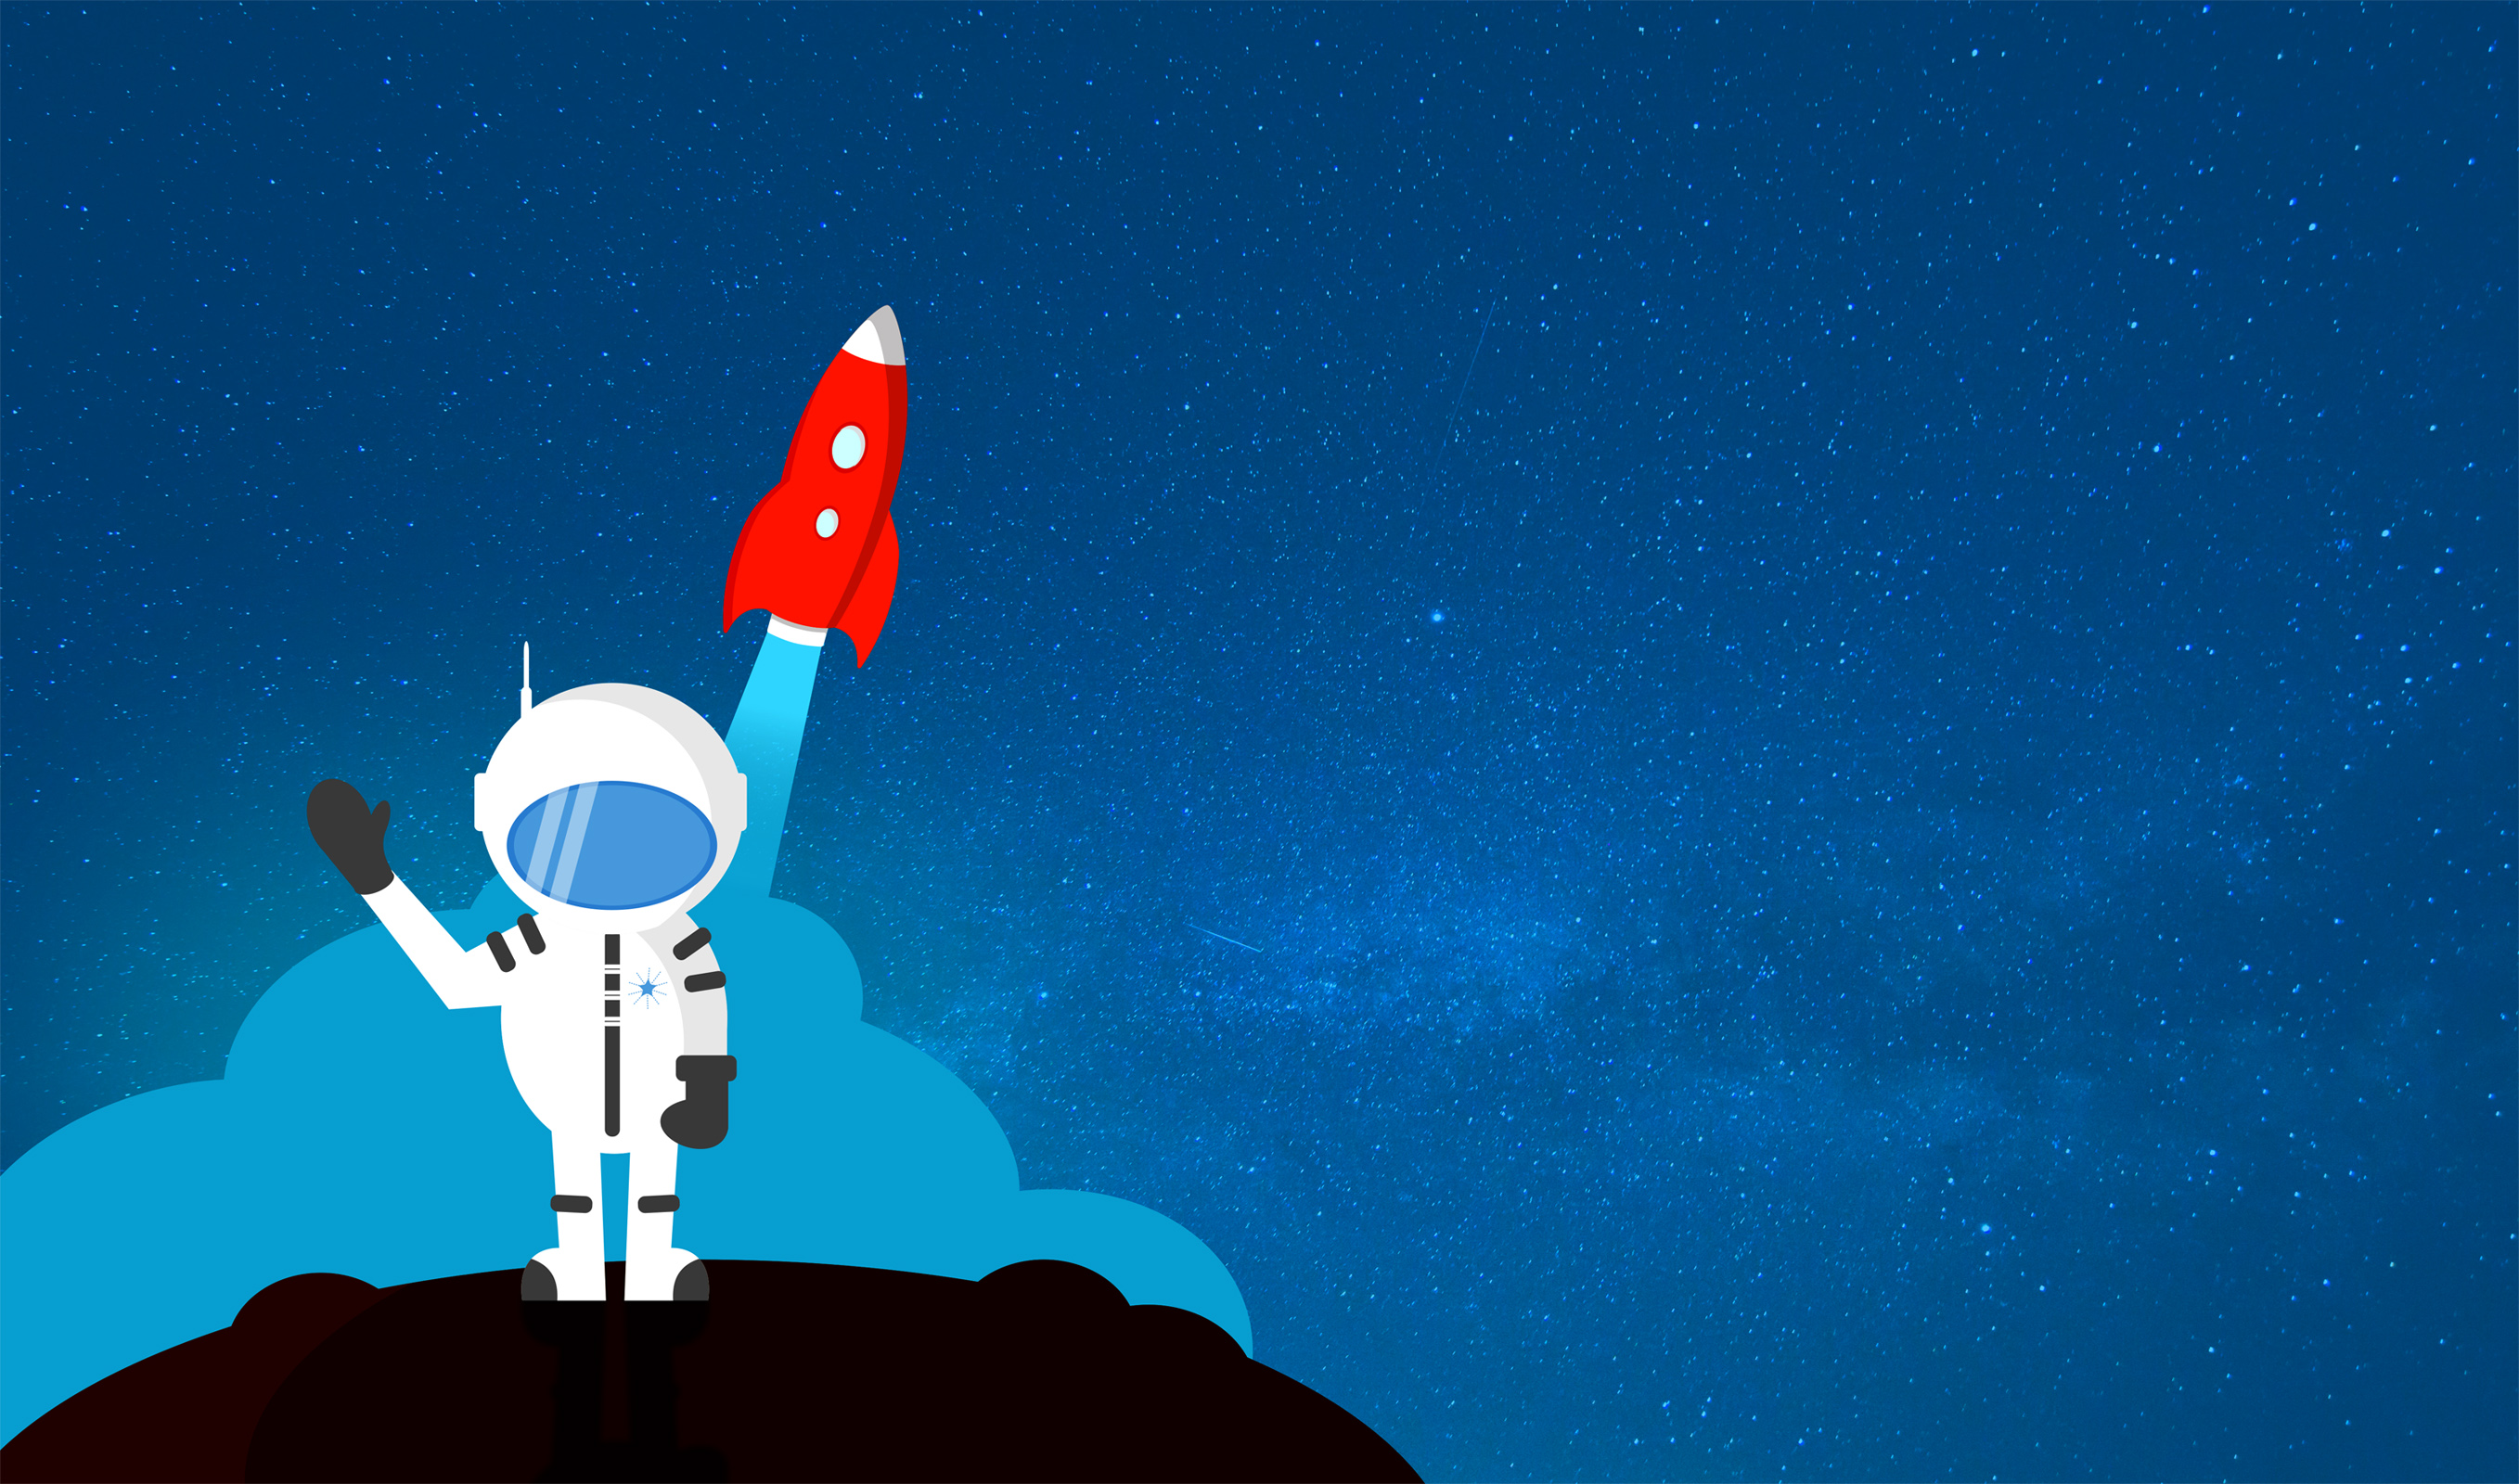 Cartoon Astronaut Waving Goodbye - With Copyspace, Alien, Planets, Science, Scene, HQ Photo